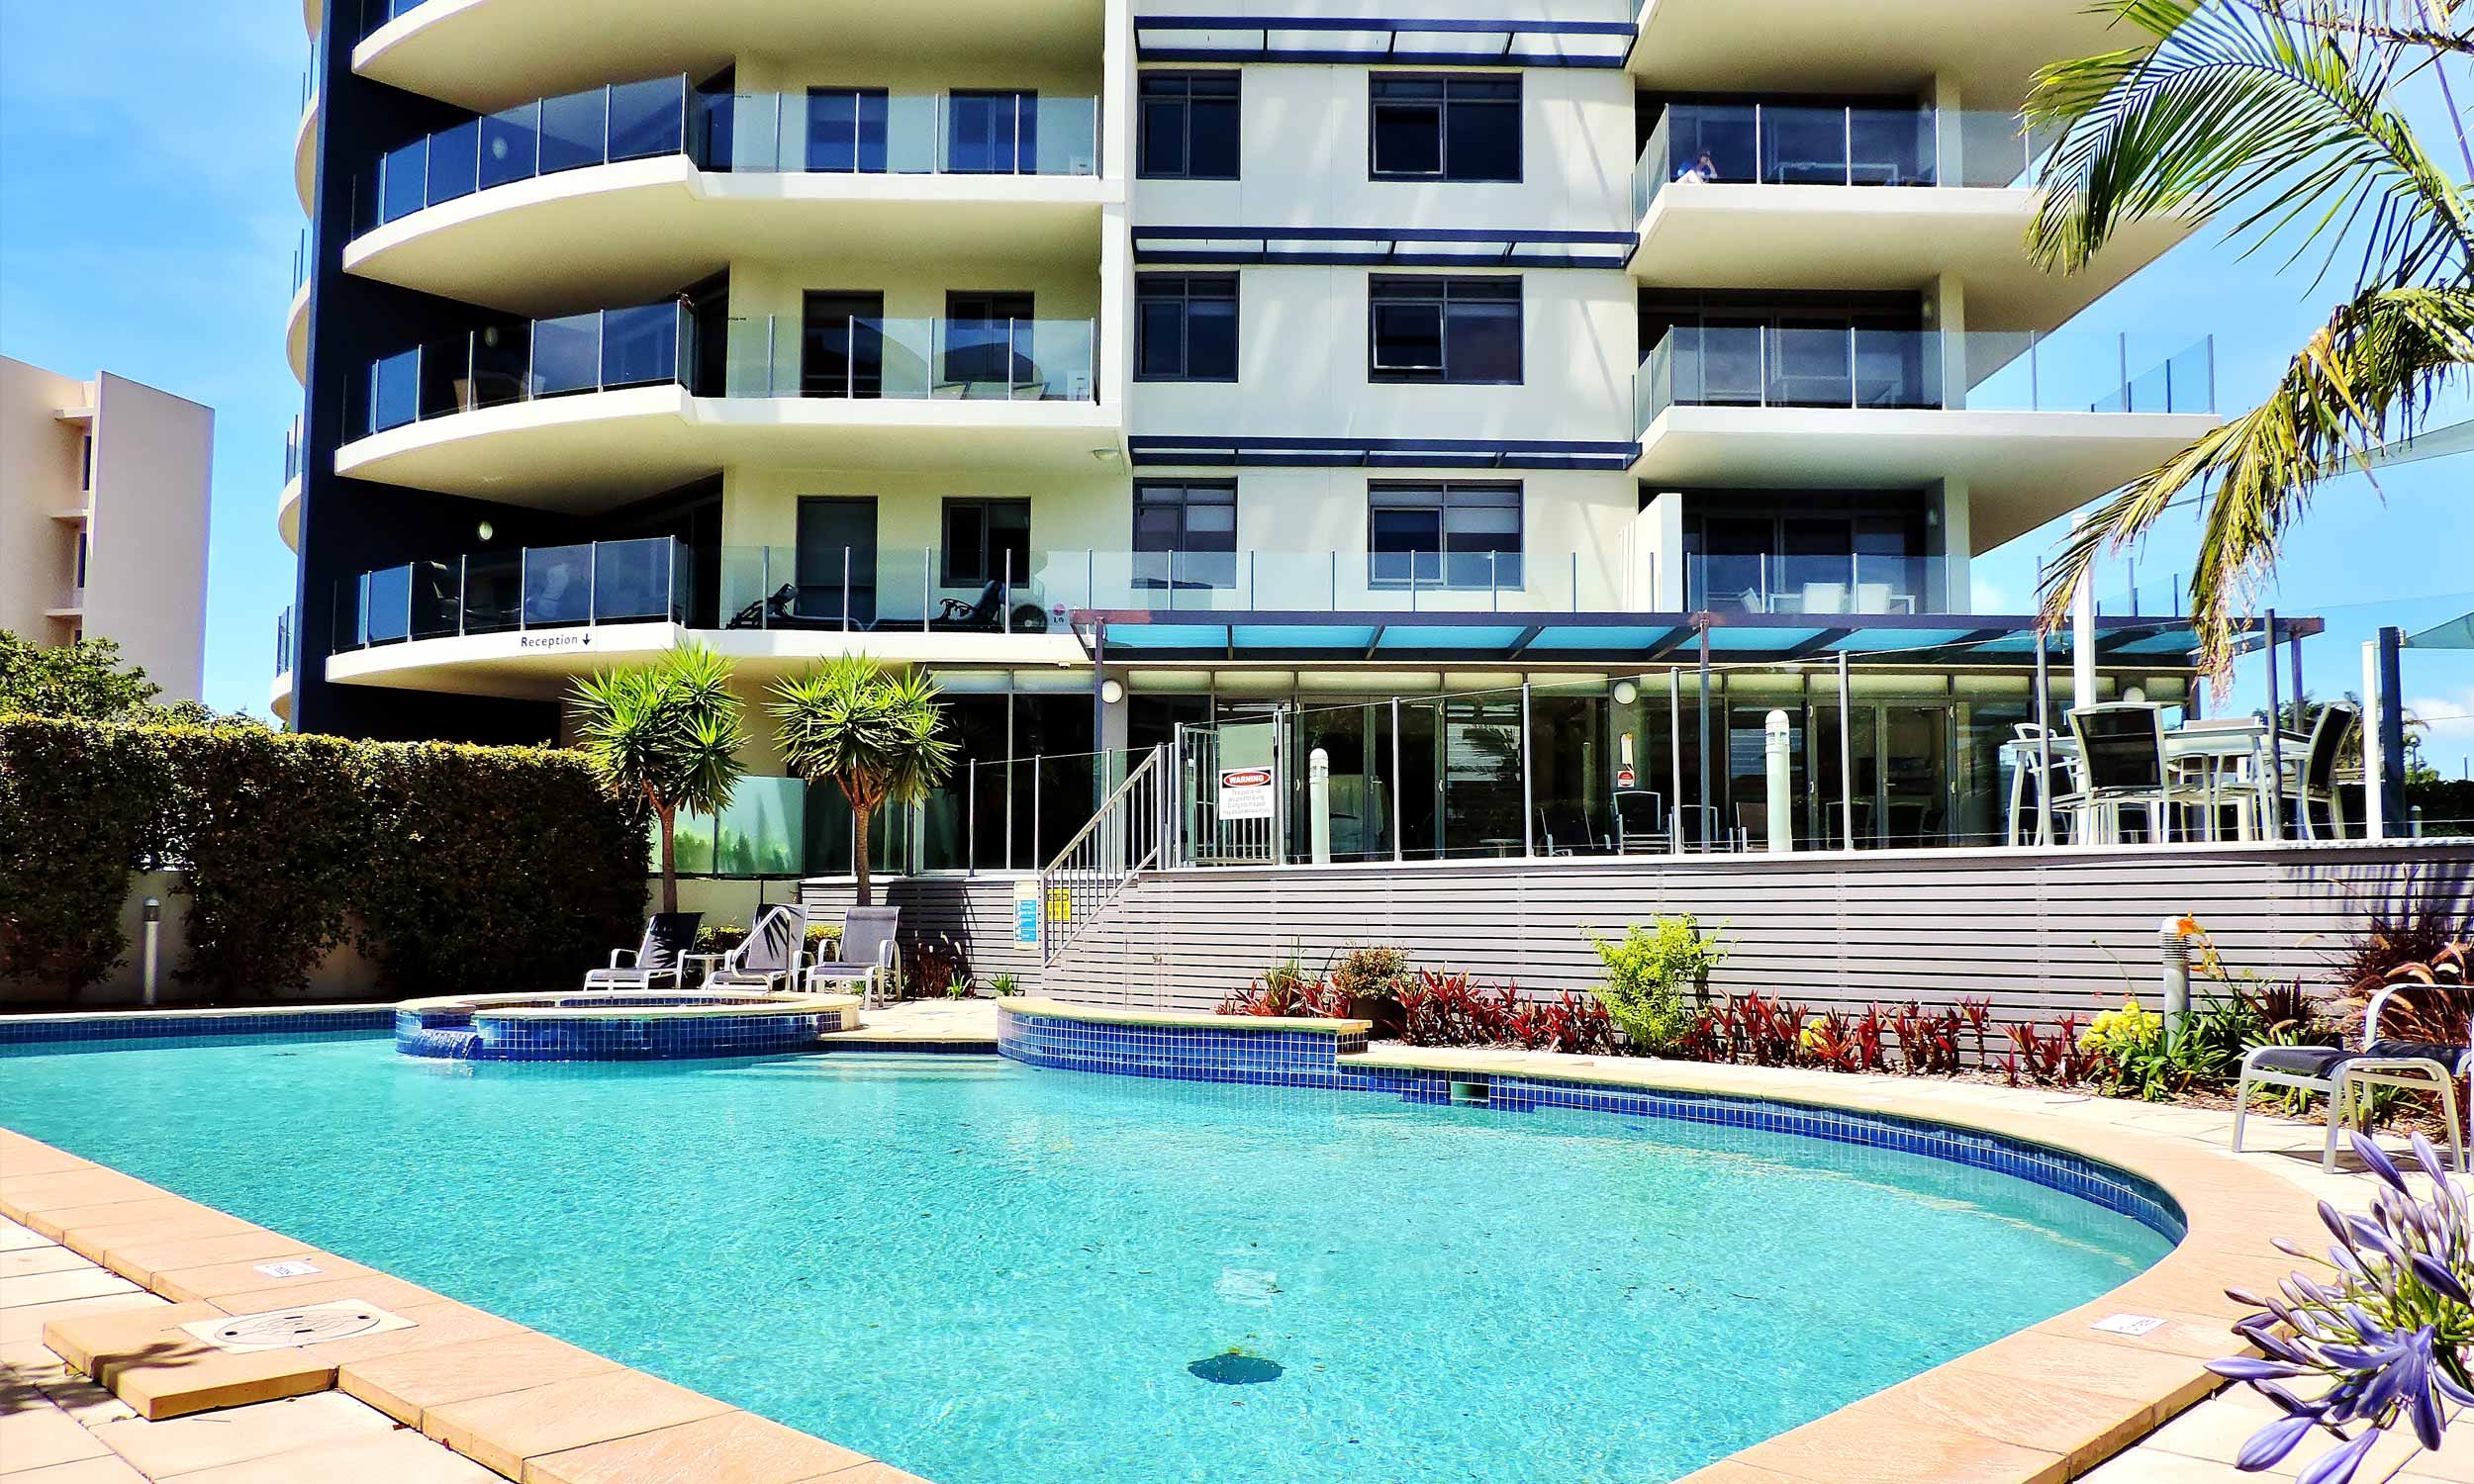 sevan-apartments-swimming-pool-forster-nsw.jpg